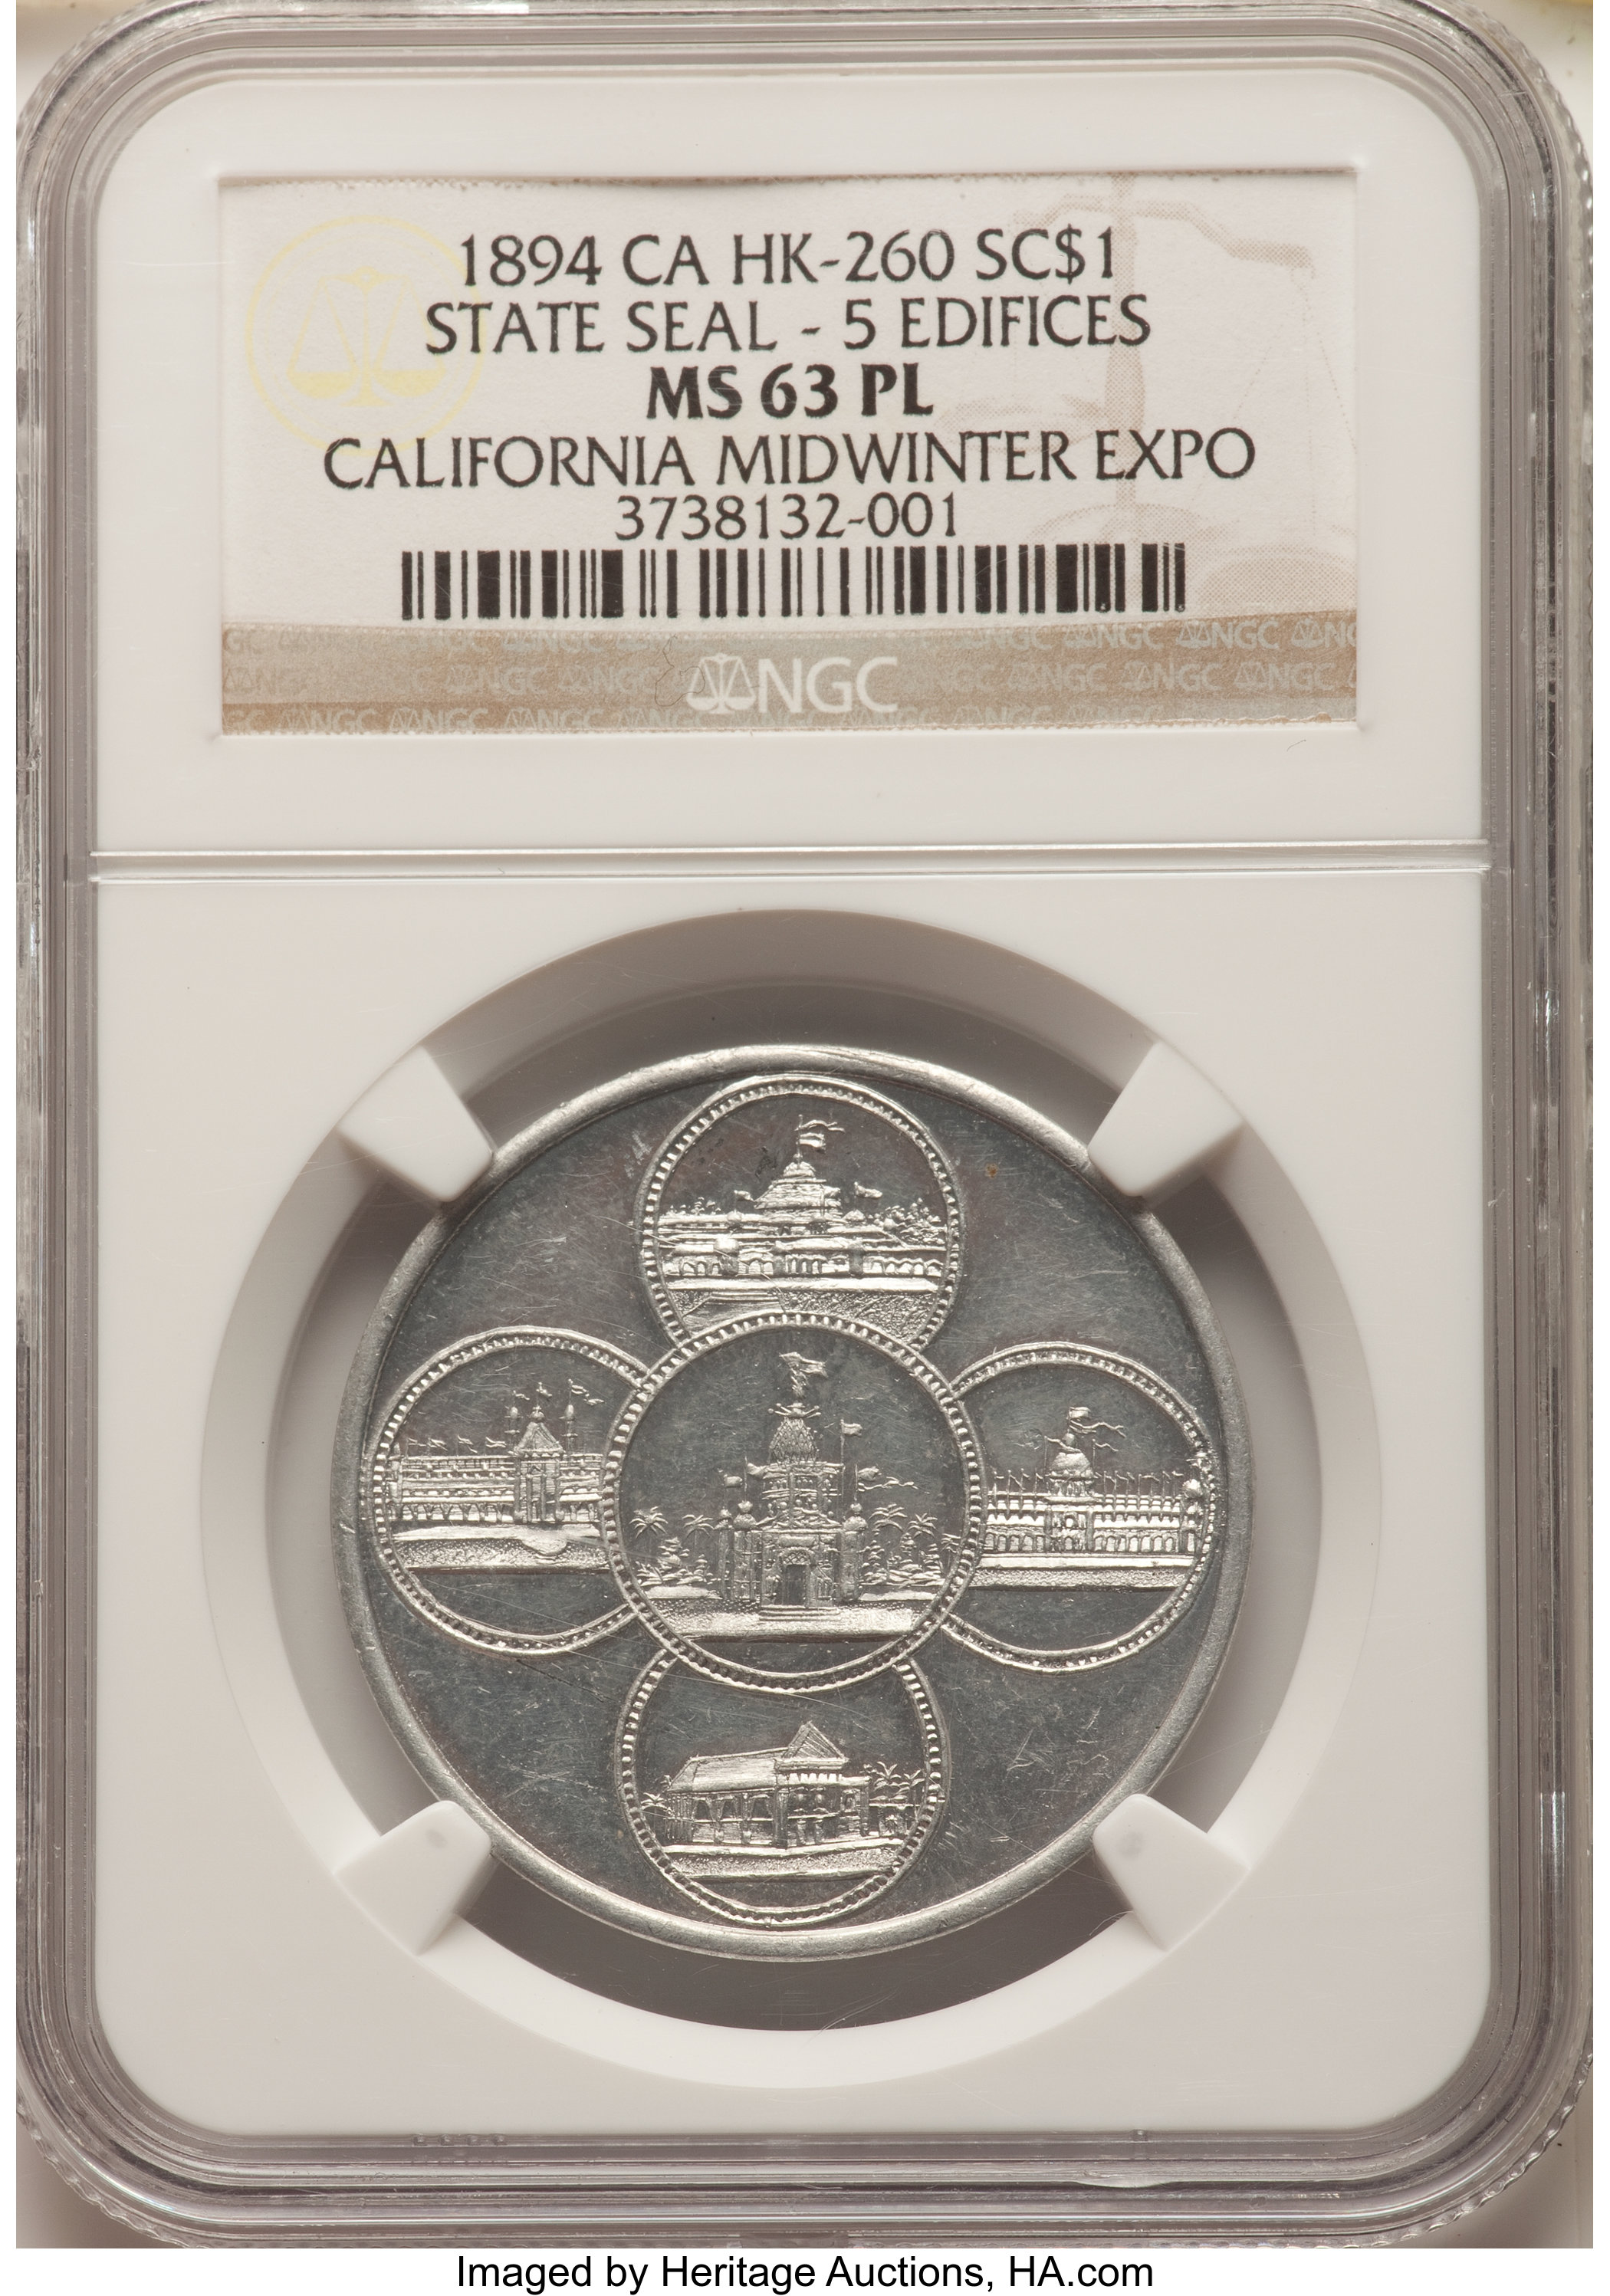 sample image for 1894 Cal Expo, State Seal, 5 Edifices rev, Aluminum SC$1 MS (HK-260)